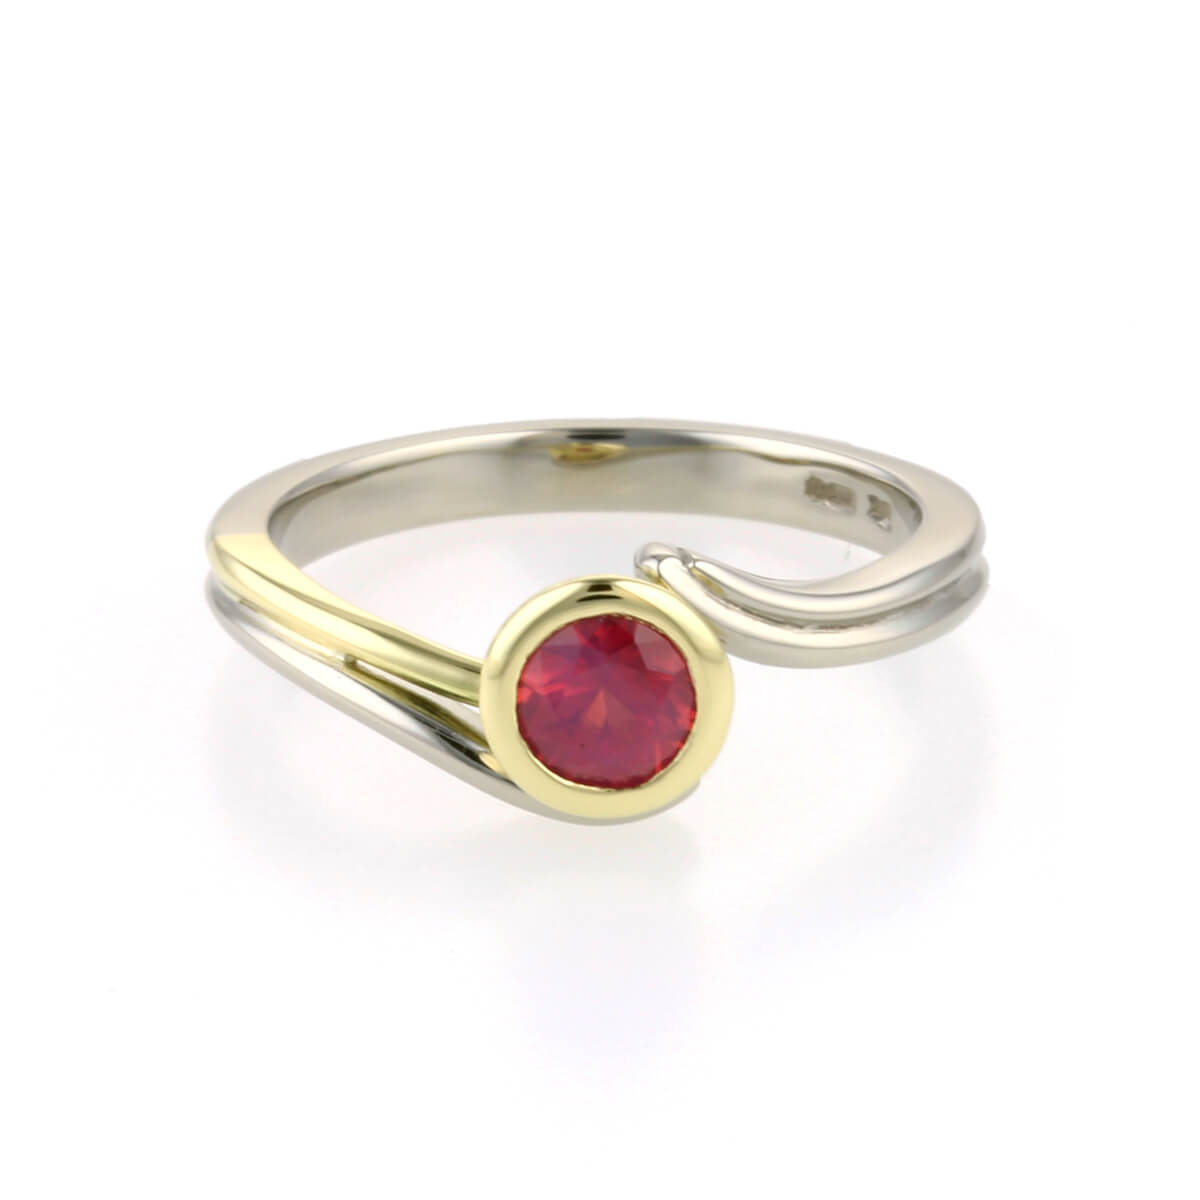 handmade-18ct-yellow-white-gold-and-ruby-engagement-ring